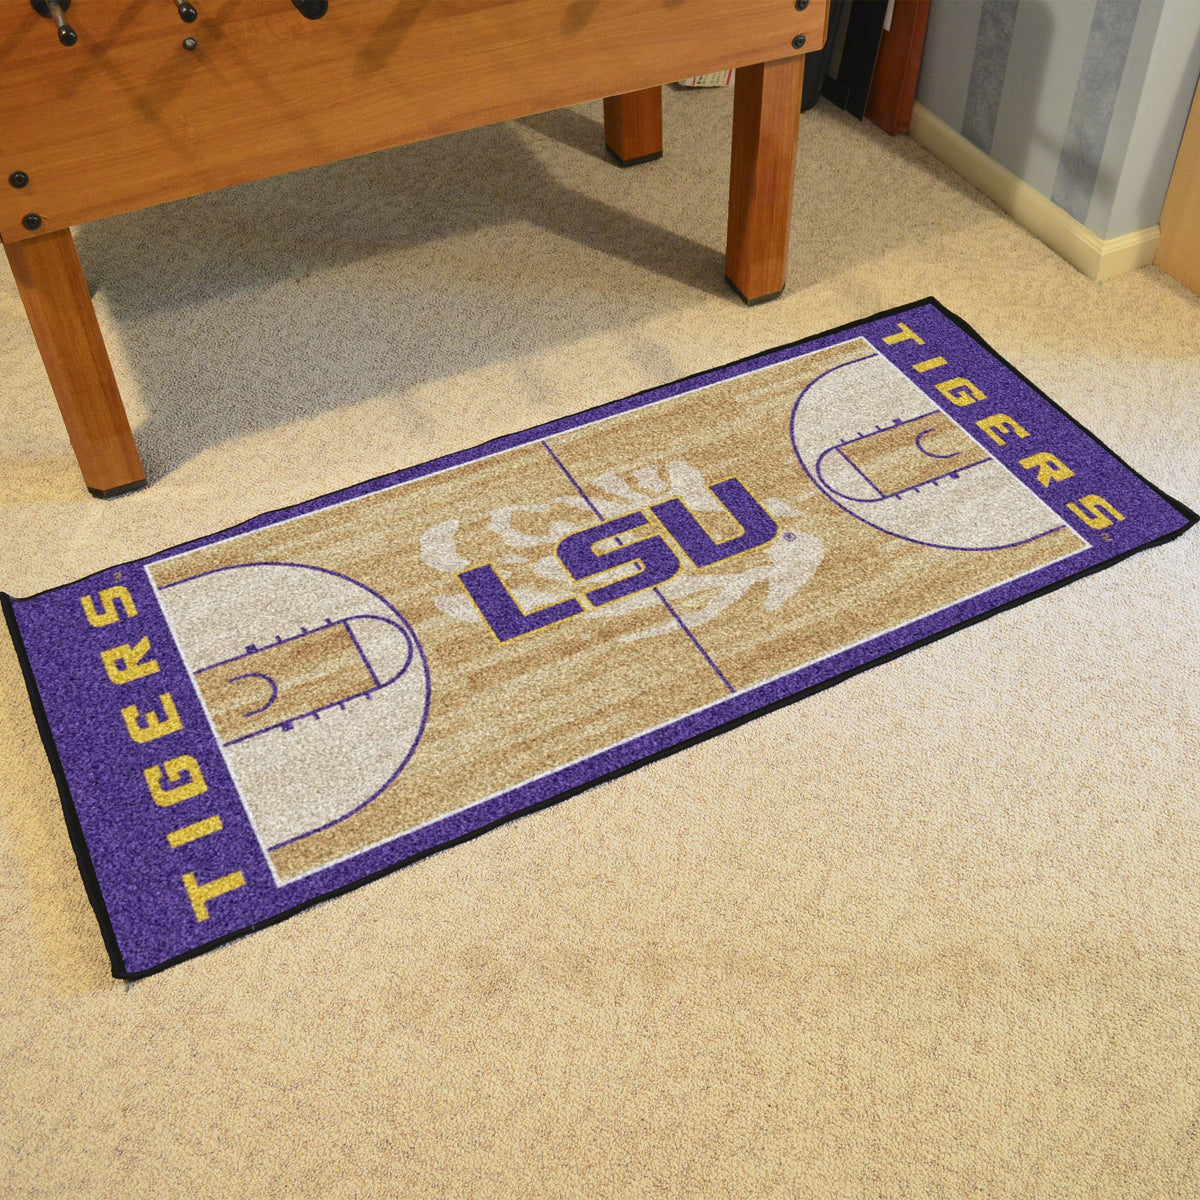 Collegiate - NCAA Basketball Runner Collegiate Mats, Rectangular Mats, NCAA Basketball Runner, Collegiate, Home Fan Mats LSU